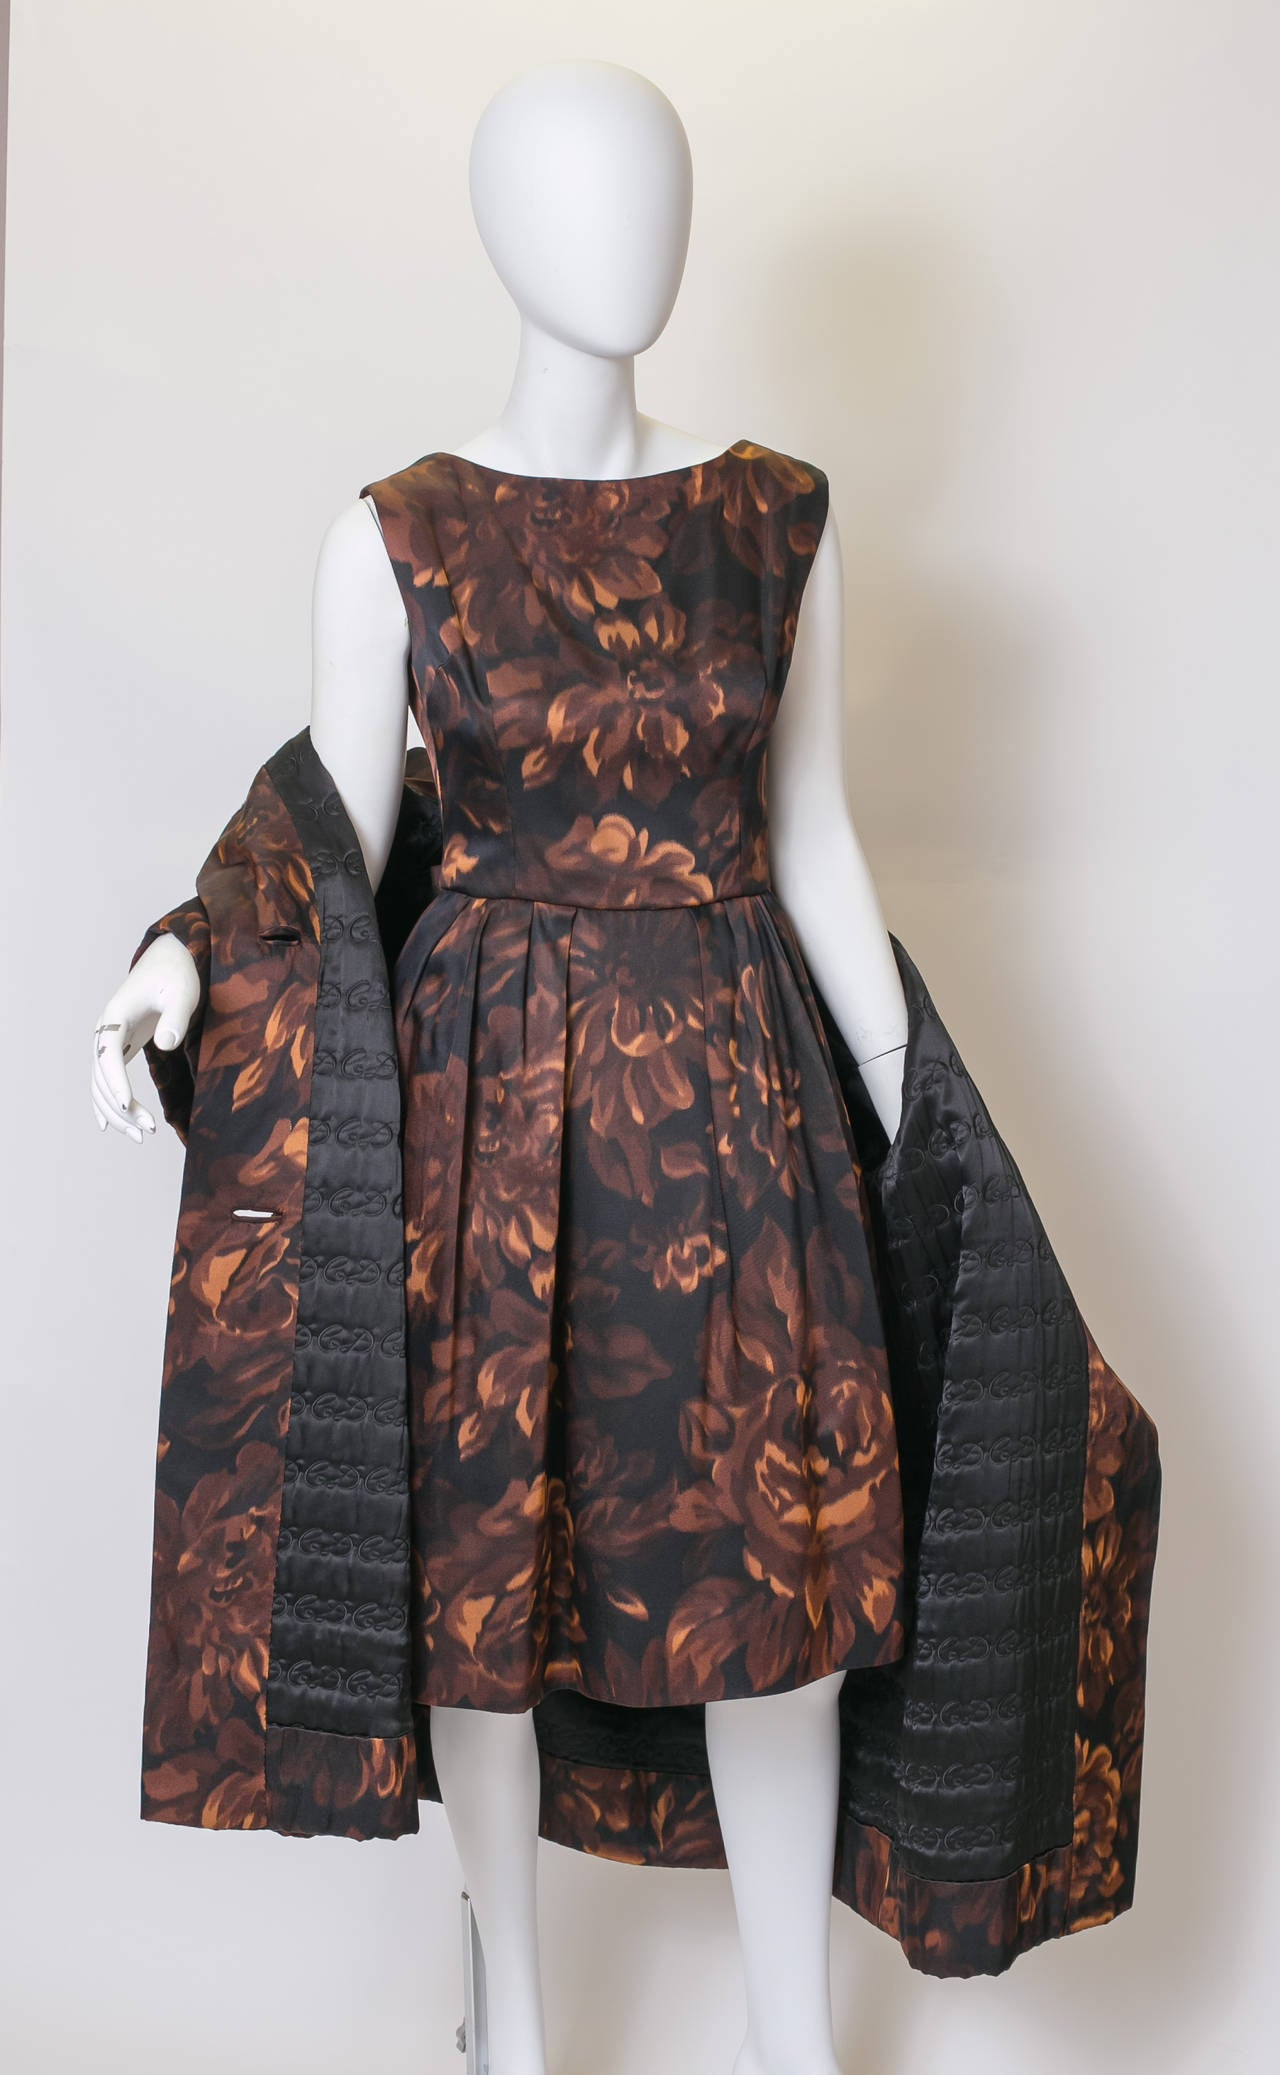 Christian Dior 1950s Dress And Coat Numbered Piece At 1stdibs